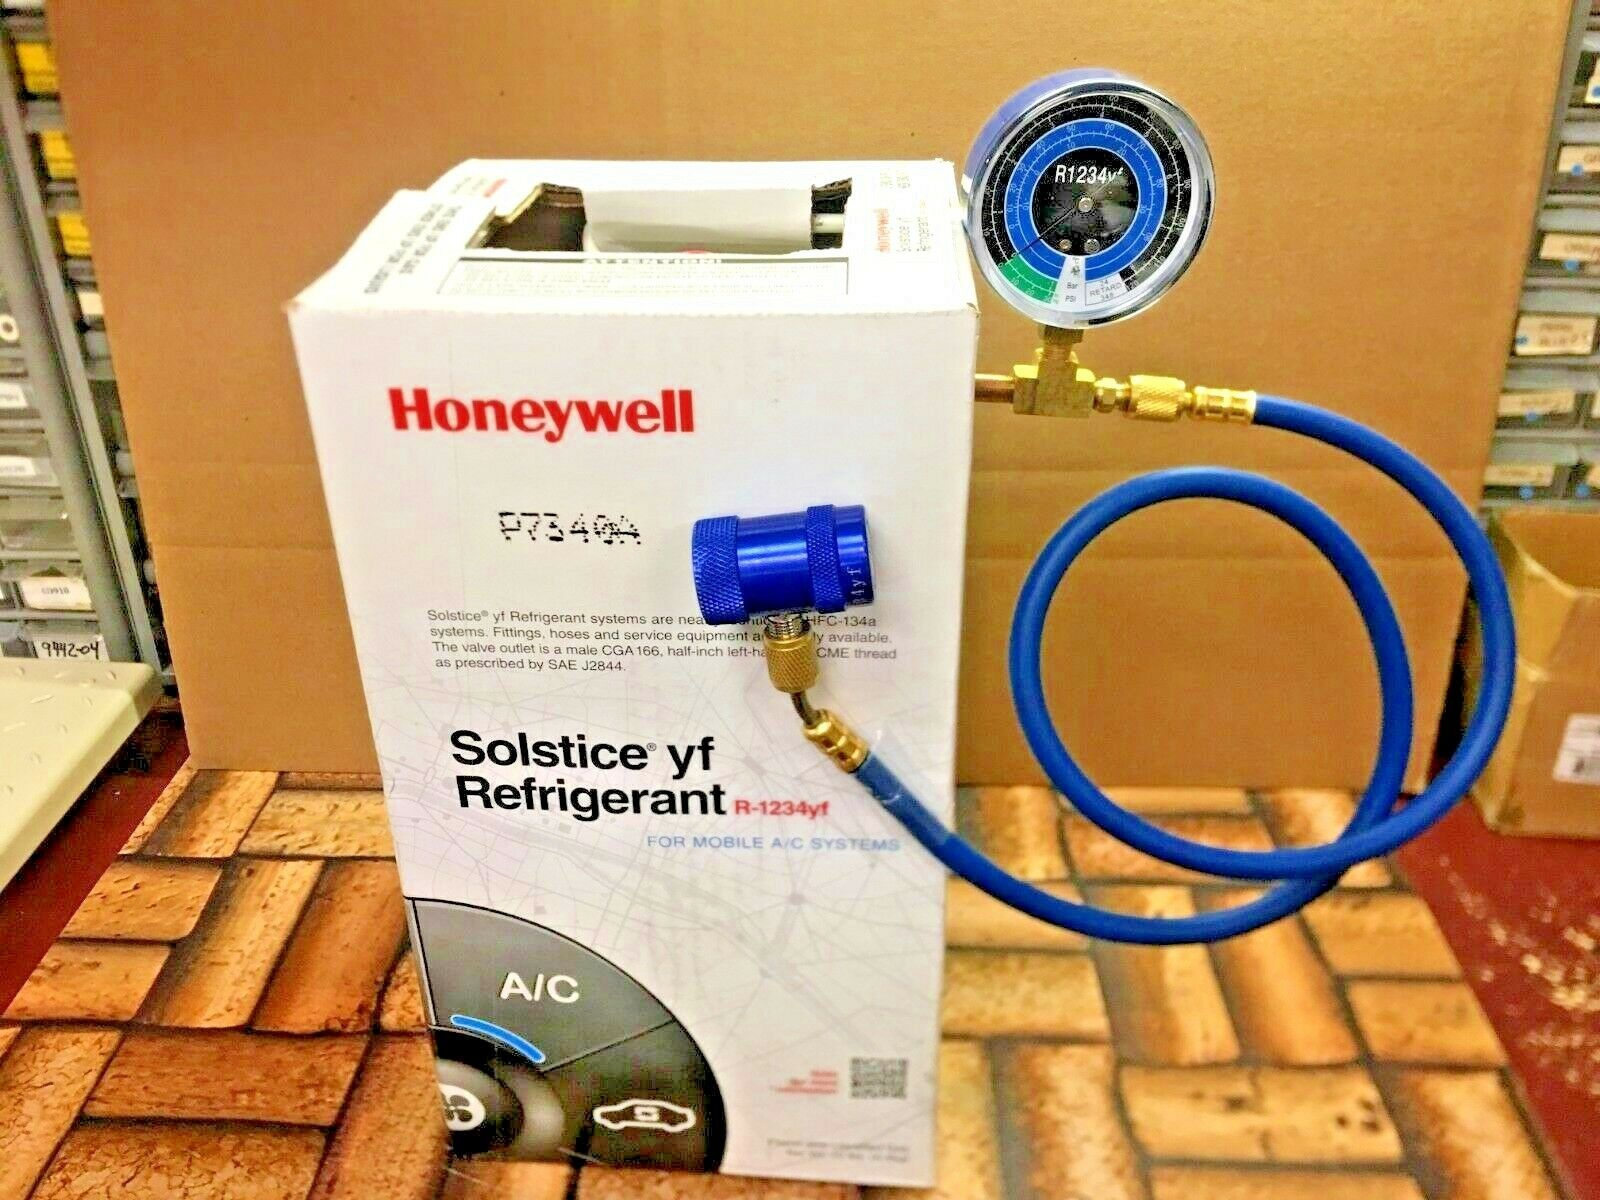 R1234YF Refrigerant Honeywell 10 Lb Solstice Check /& Charge-It Kit S Sealed